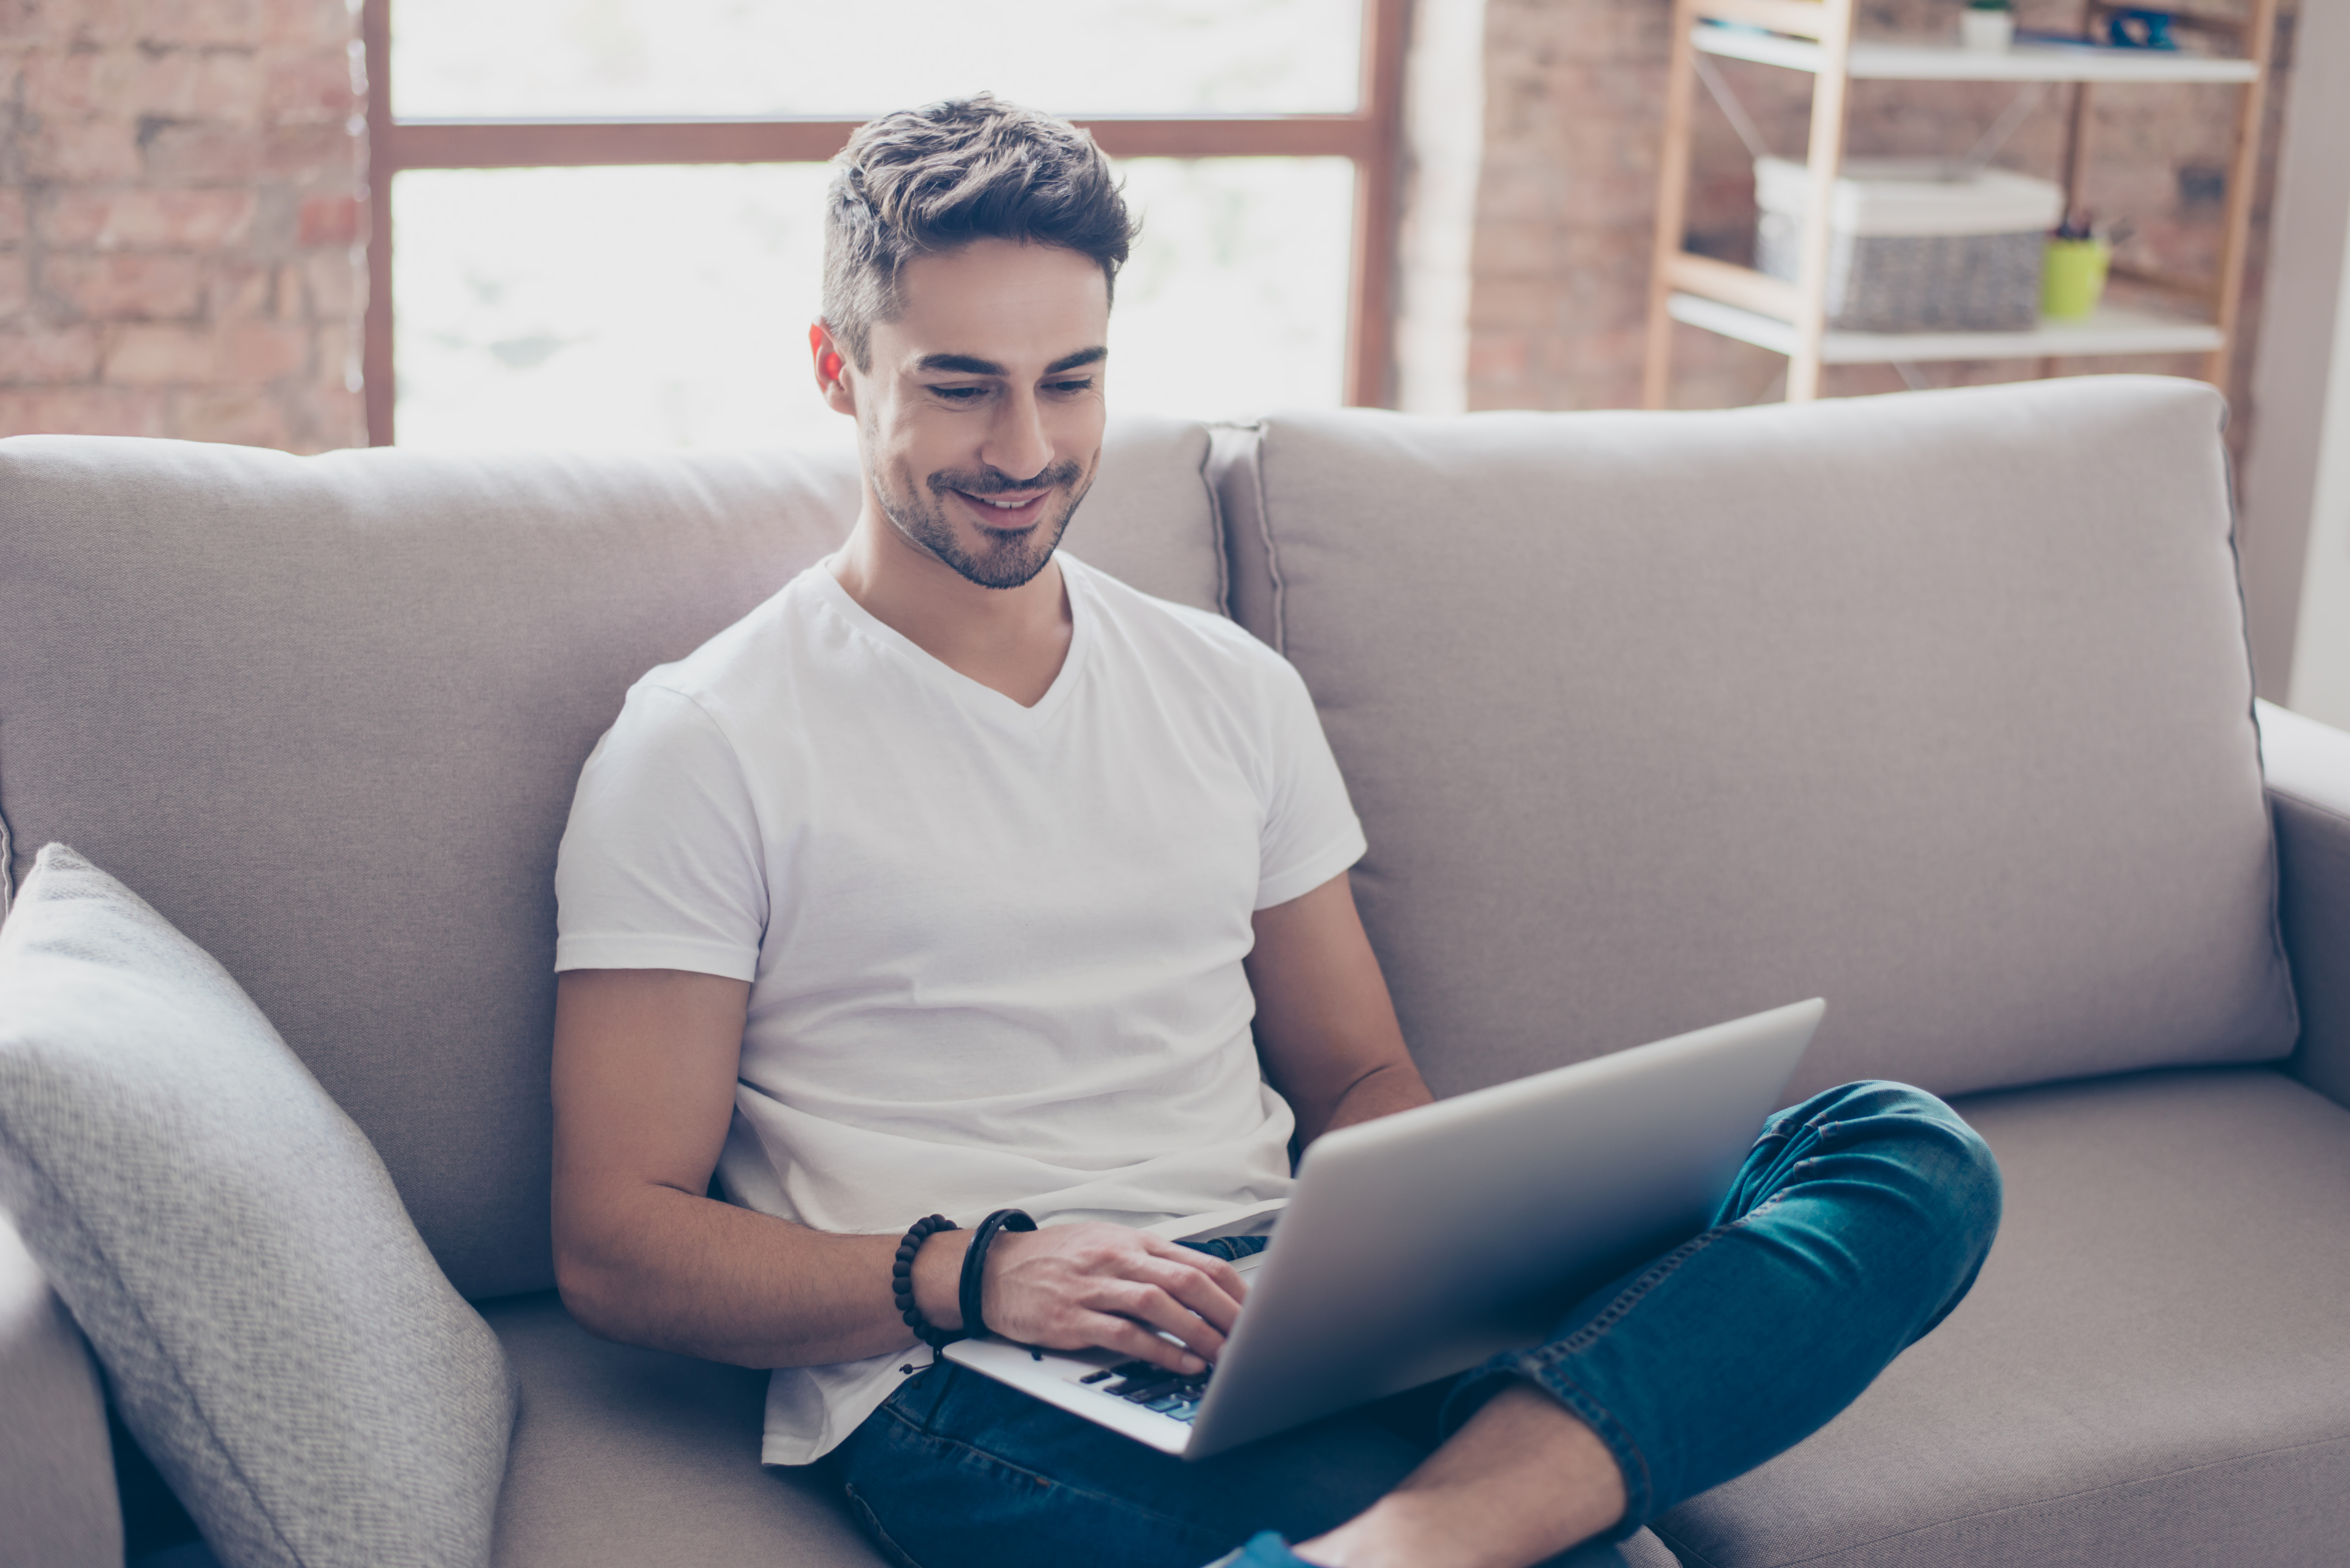 Interracial Dating Man Browsing Laptop